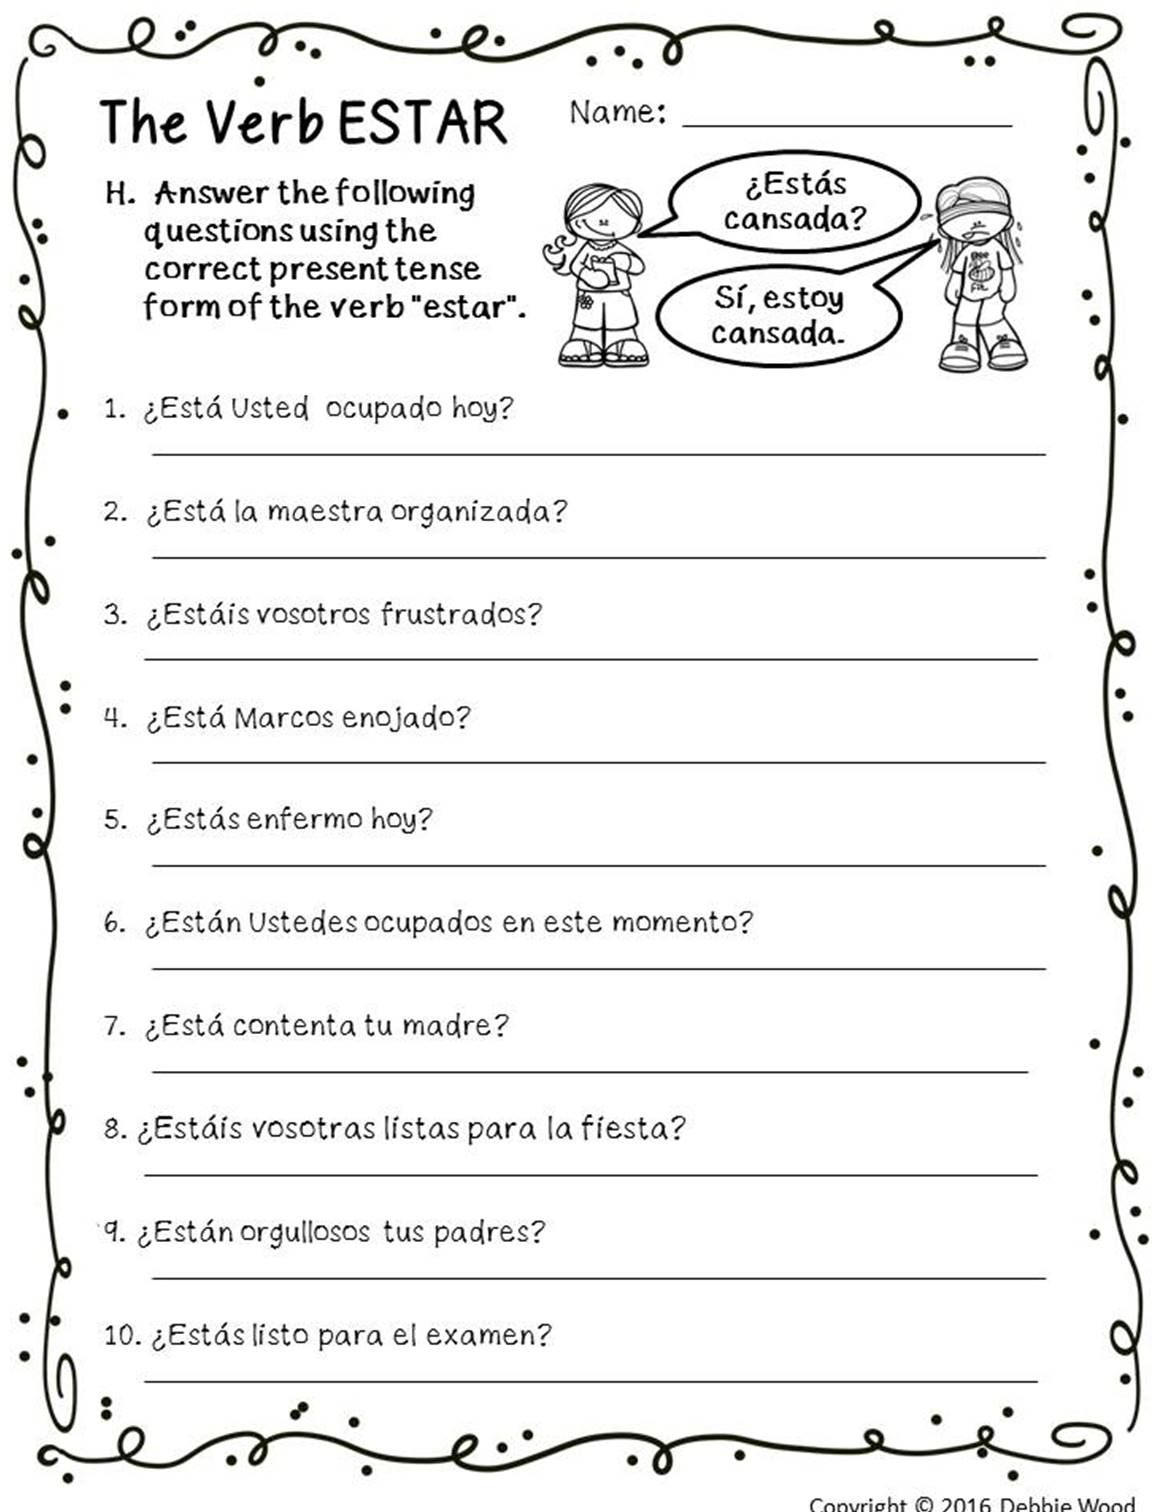 Spanish Verb Estar Posters And Worksheets Classroom Decor